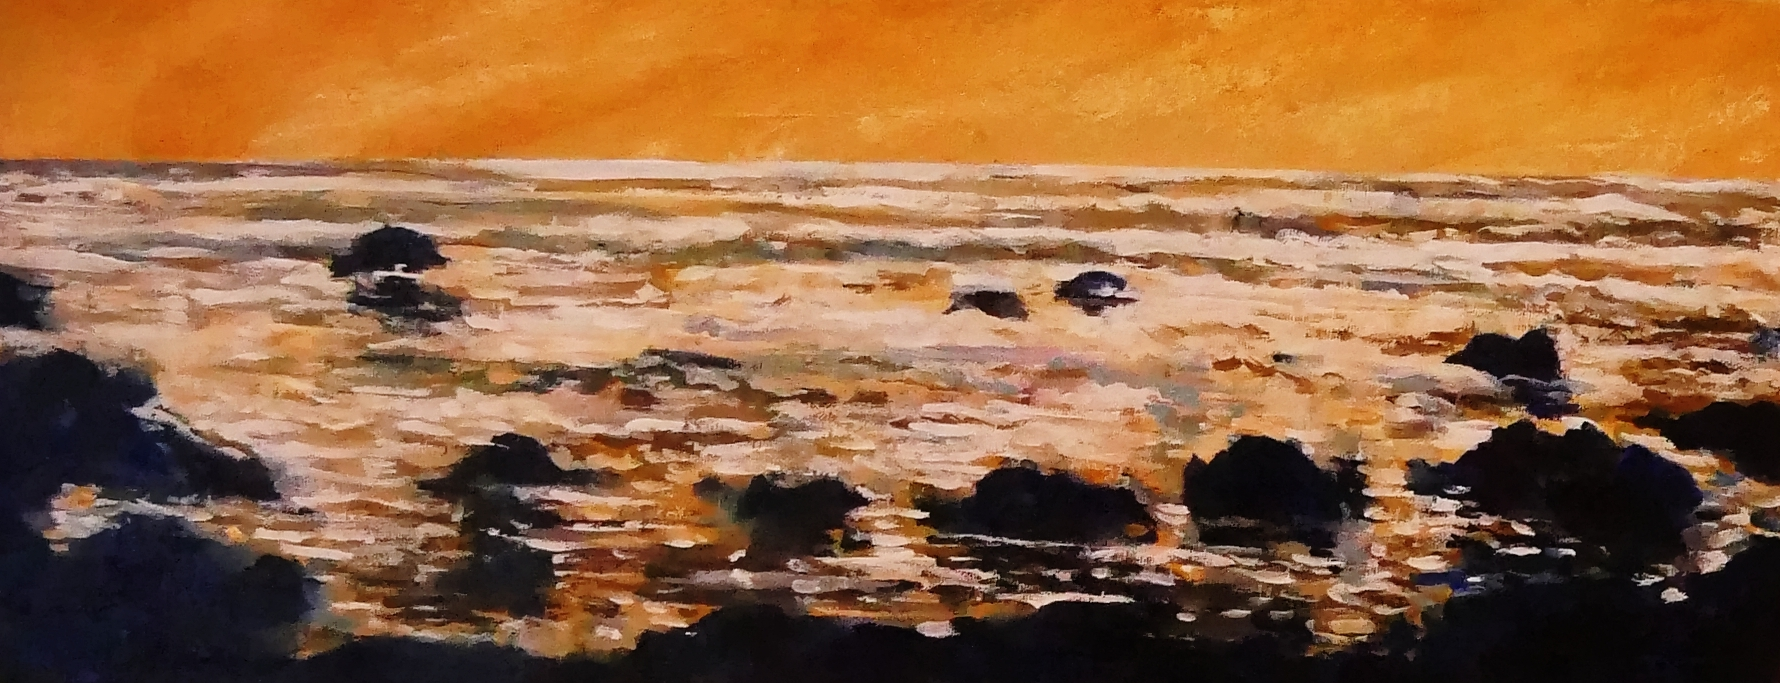 Running Tide, Yellow Ochre